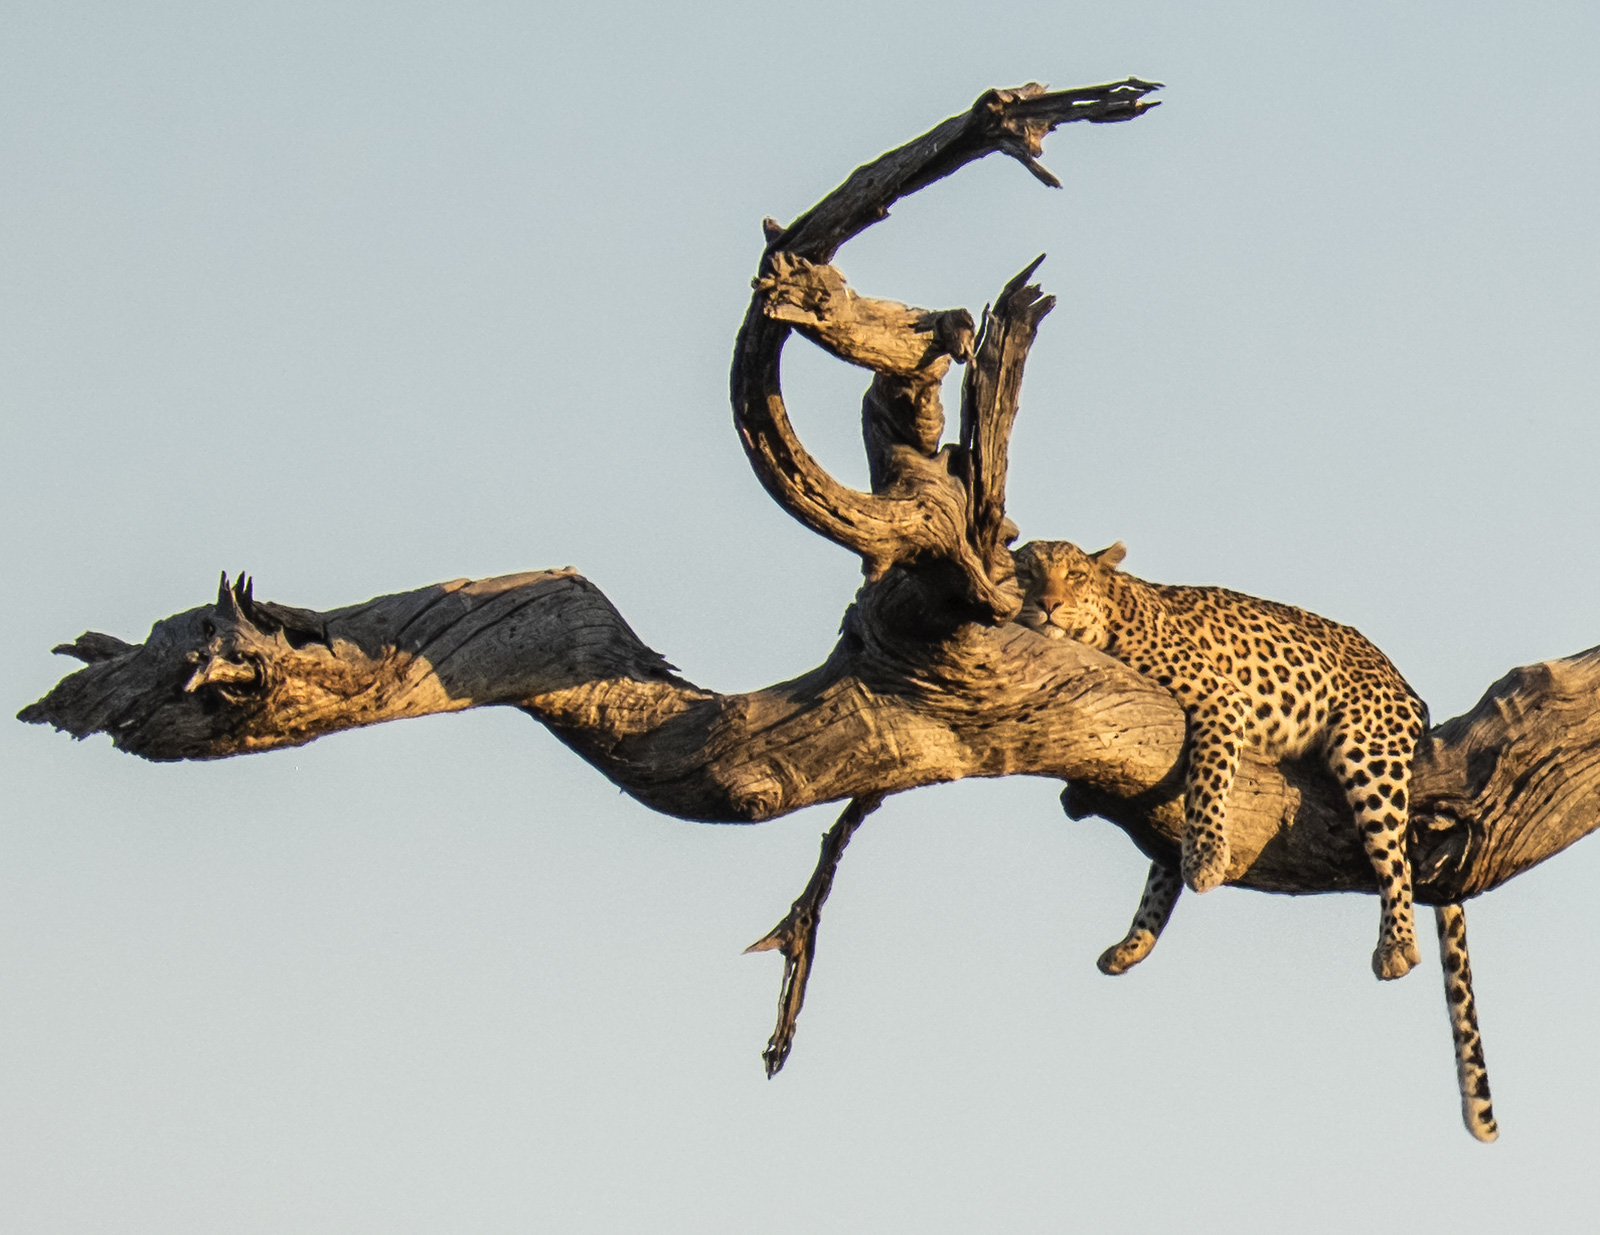 Chilled Leopard, Chobe, Botswana, Africa, big five, killing, predators, fear, prostrate, branch, camel thorn tree, legs,, photo